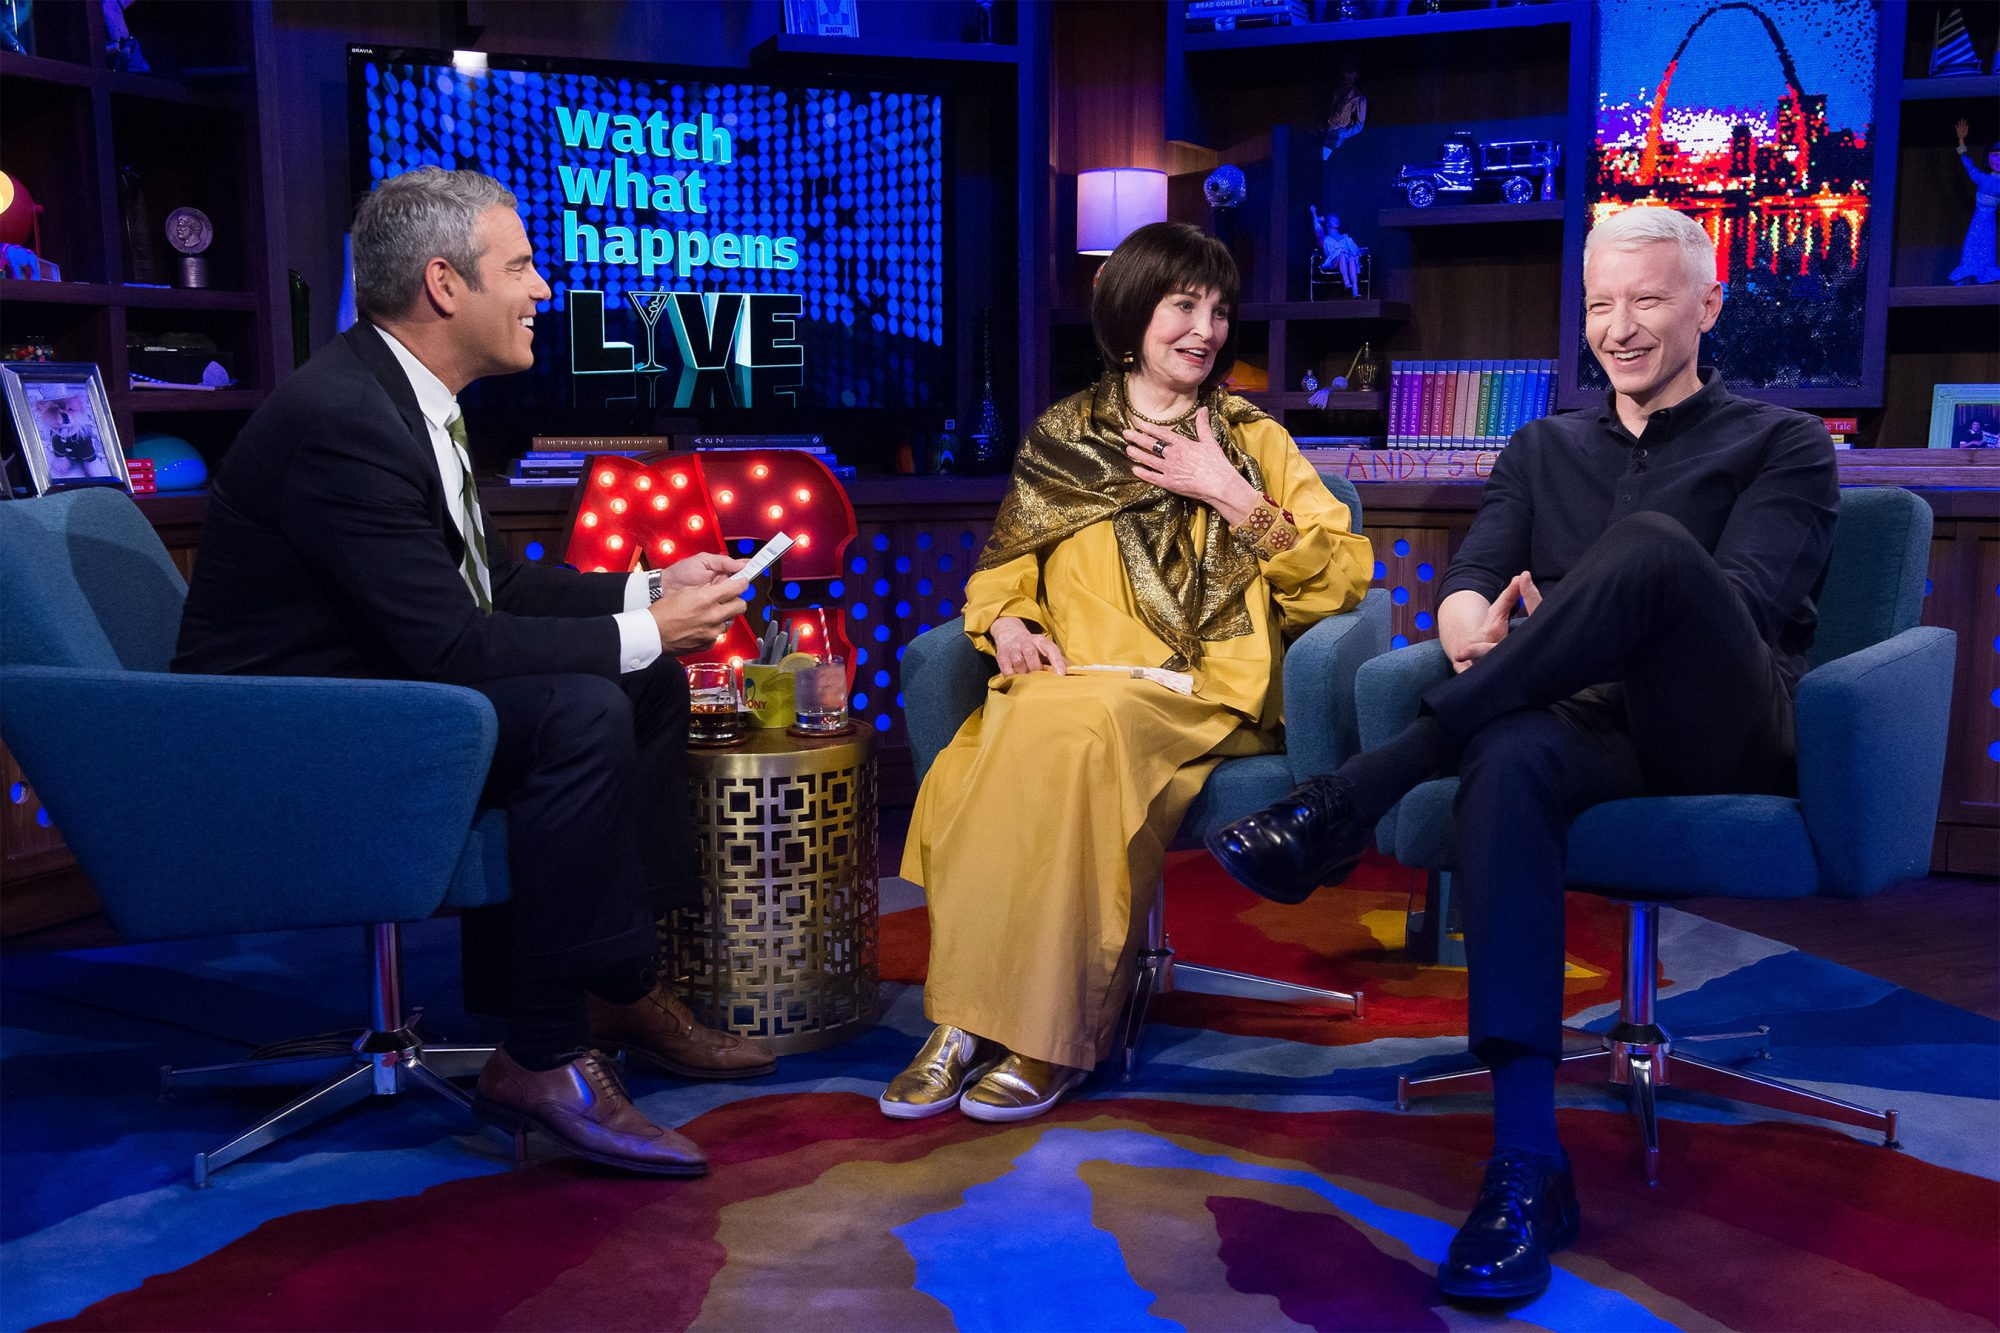 Andy Cohen, Gloria Vanderbilt and Anderson Cooper